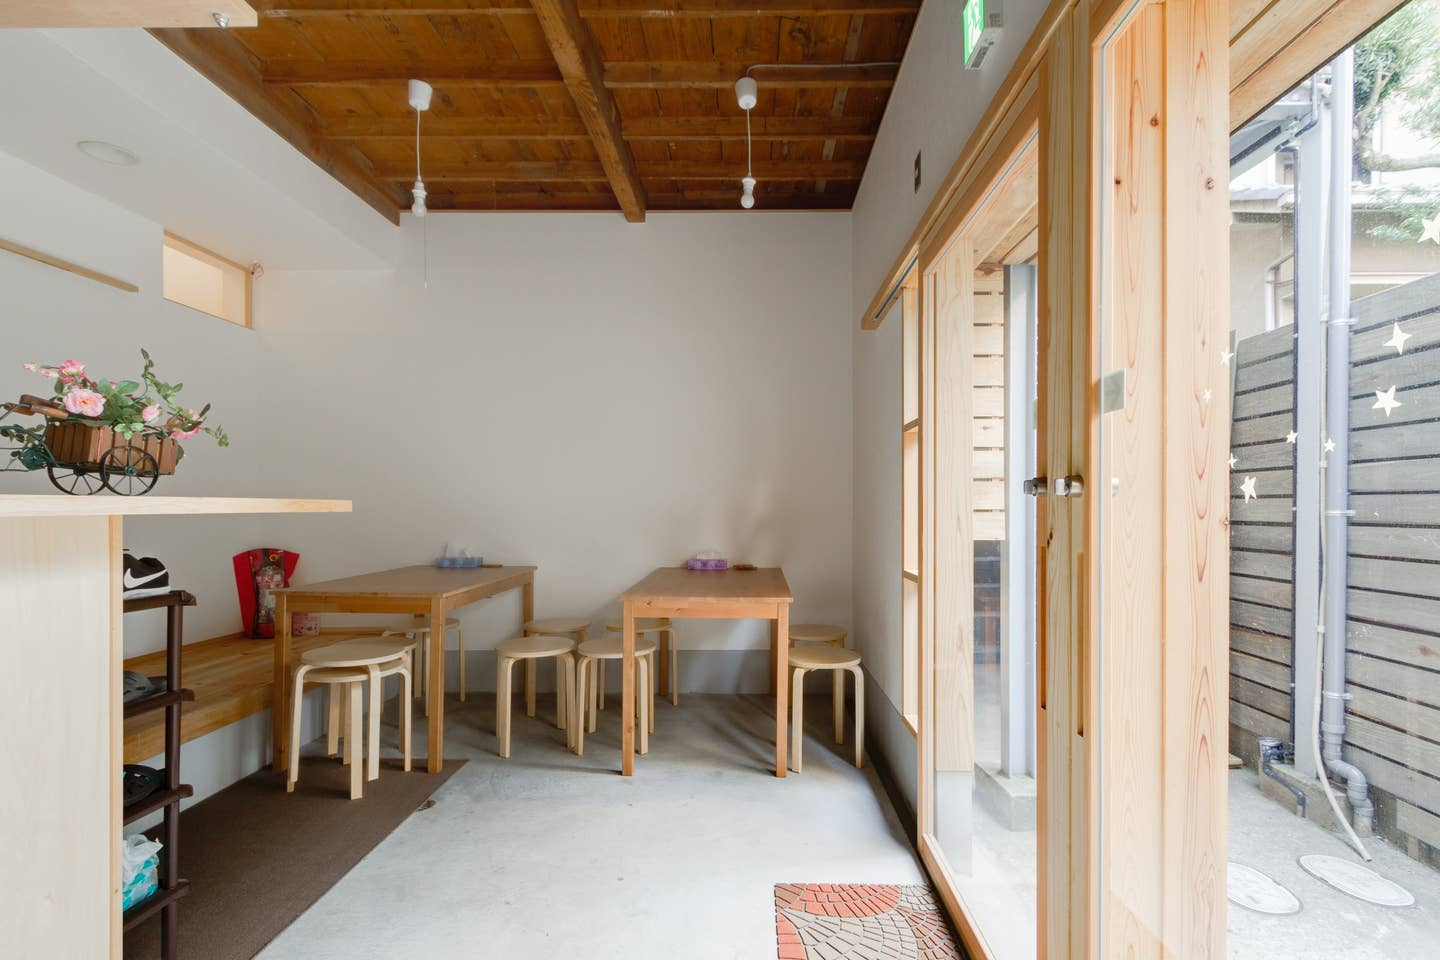 This Entire house hosted by Kaori is a good option for large families wanting to stay together in an Airbnb in Osaka